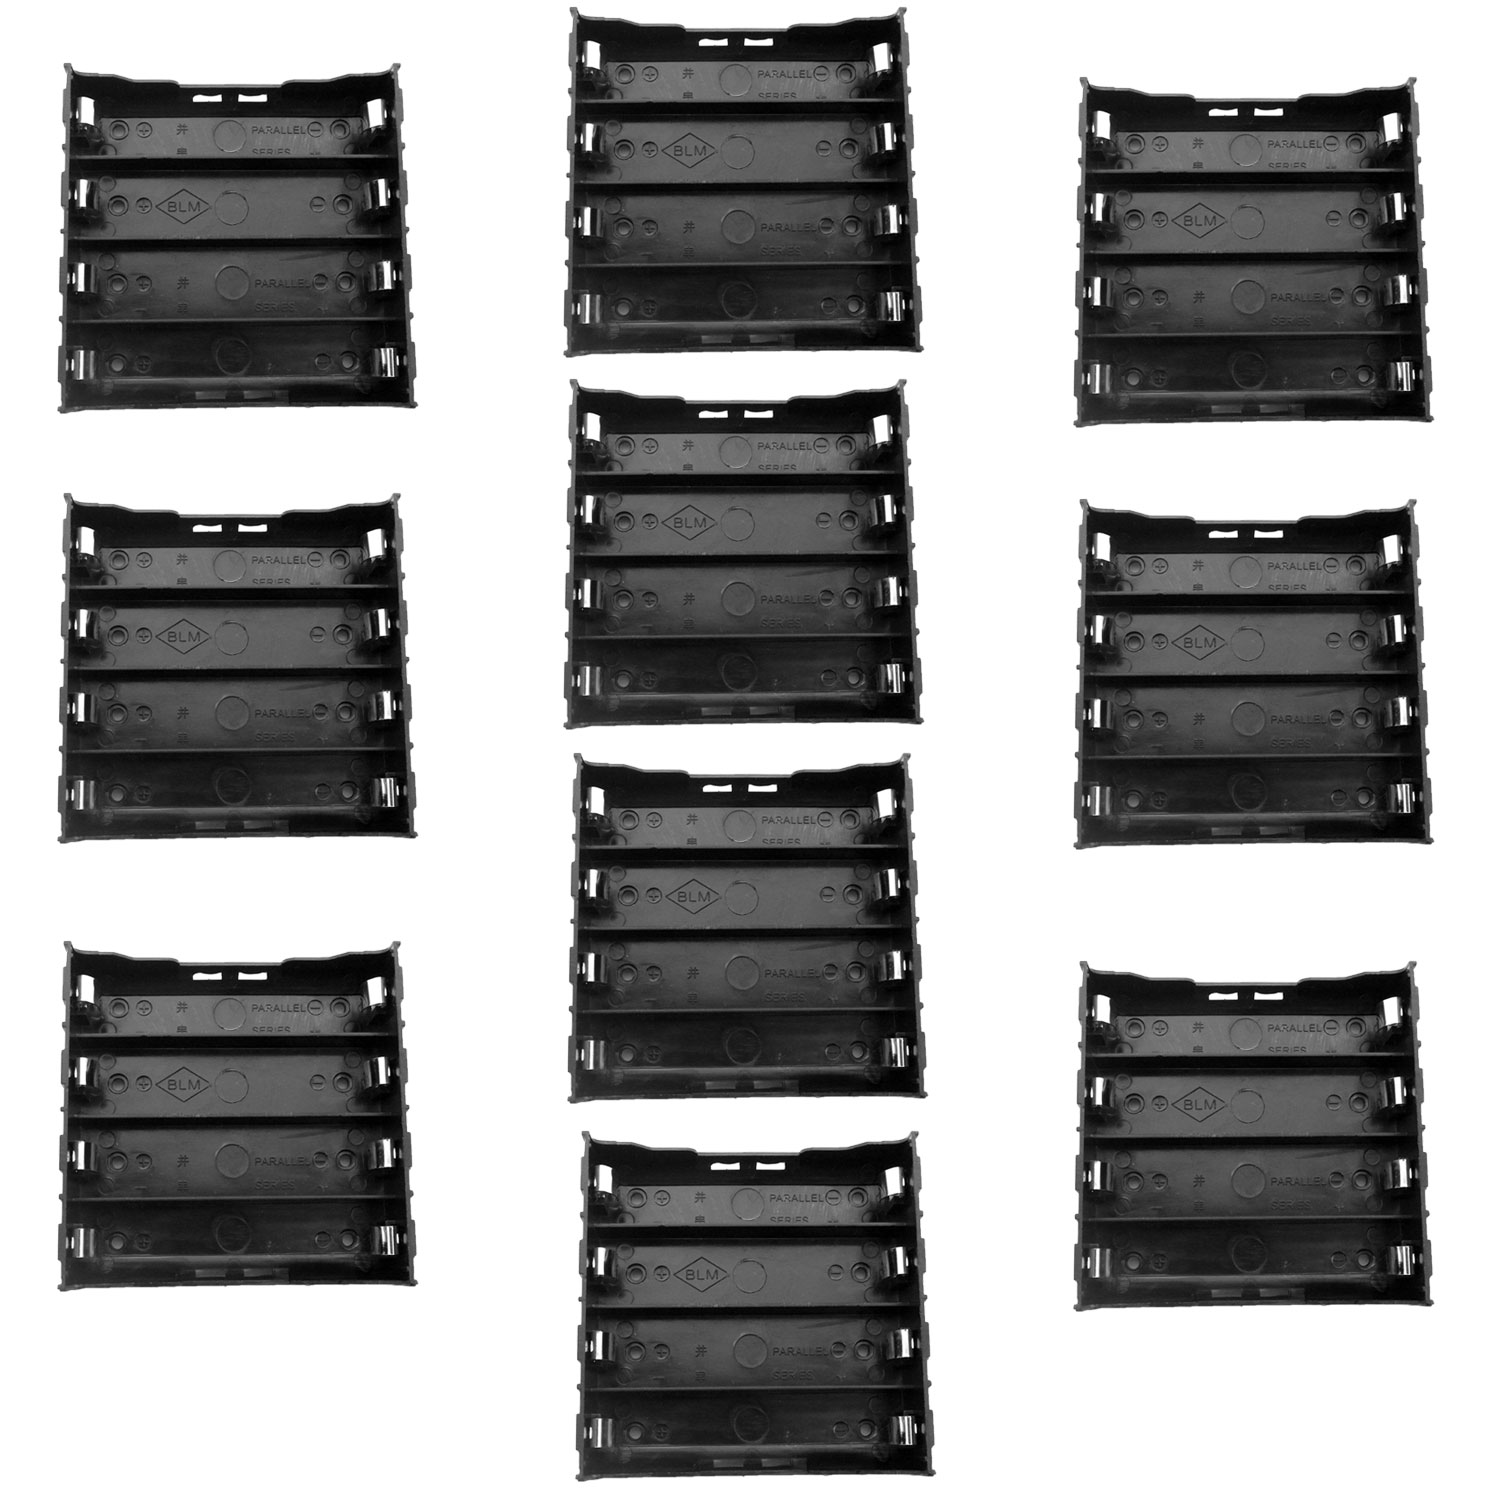 TrendBox Pack of 10 - DIY Battery Plastic Black Case Holders with 8 Pins Contact Fit For Four 4 x 3.7V 18650 Li-ion Lithium Rechargeable Batteries (Not Included)